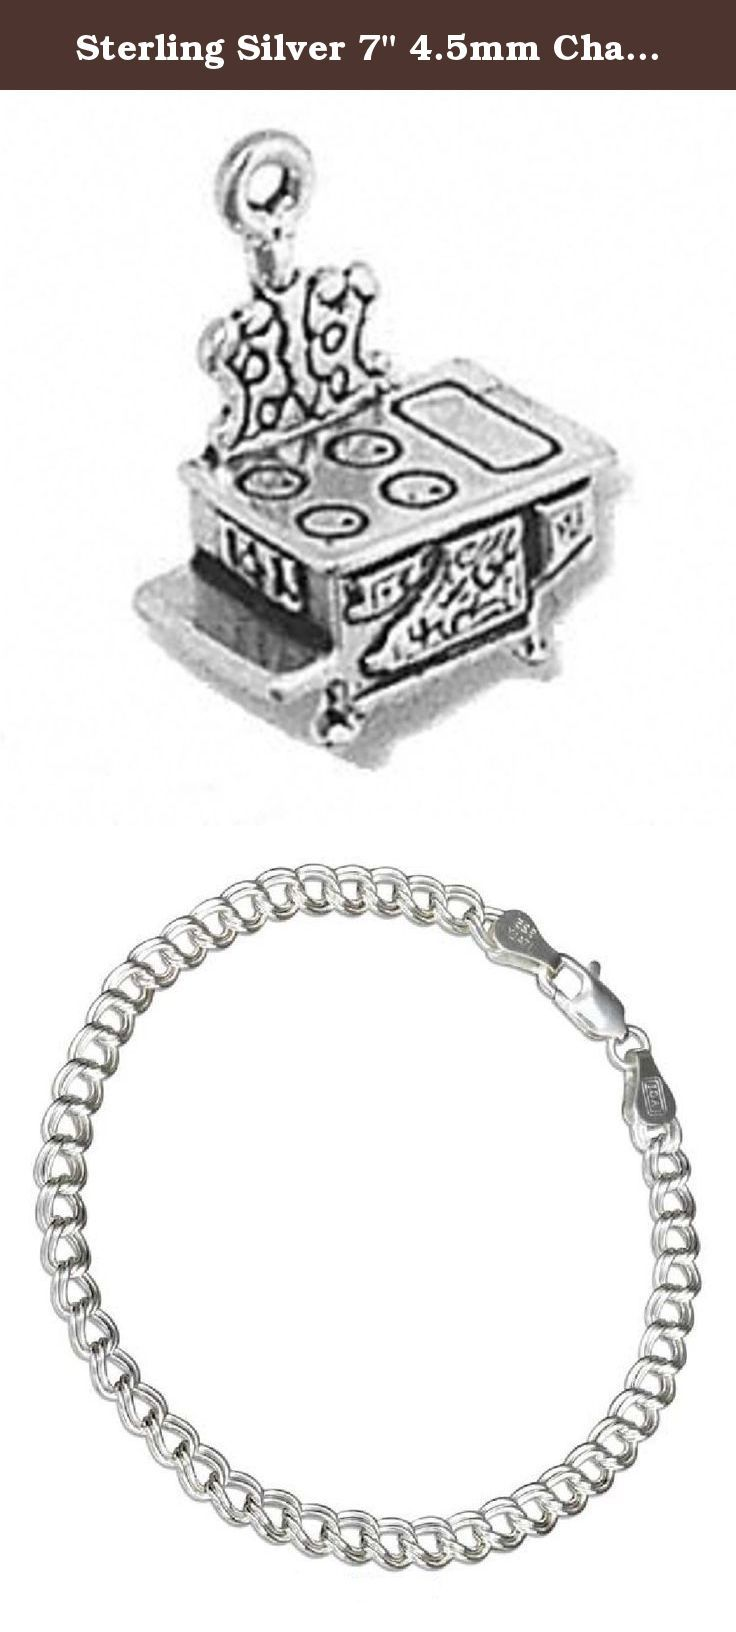 "Sterling Silver 7"" 4.5mm Charm Bracelet With Attached 3D Kitchen Cooks Small Old Vintage Cast Iron Stove Cooking Charm. Sterling Silver 7"" 4.5mm Italian Made Charm Bracelet With Attached 3D Small Old Vintage Cast Iron Stove Charm. Great Charm For Antique Collectors Or Someone Wood Burning Stove. Material: .925 Sterling Silver Dimensions: Fully 3D Charm Height: 4/8"" Length: 4/8"" Width (Thickness): 3/8"" Units Sold By: Single SKU#: A37854T-BR452 Charm Made In: United States All Measurements…"